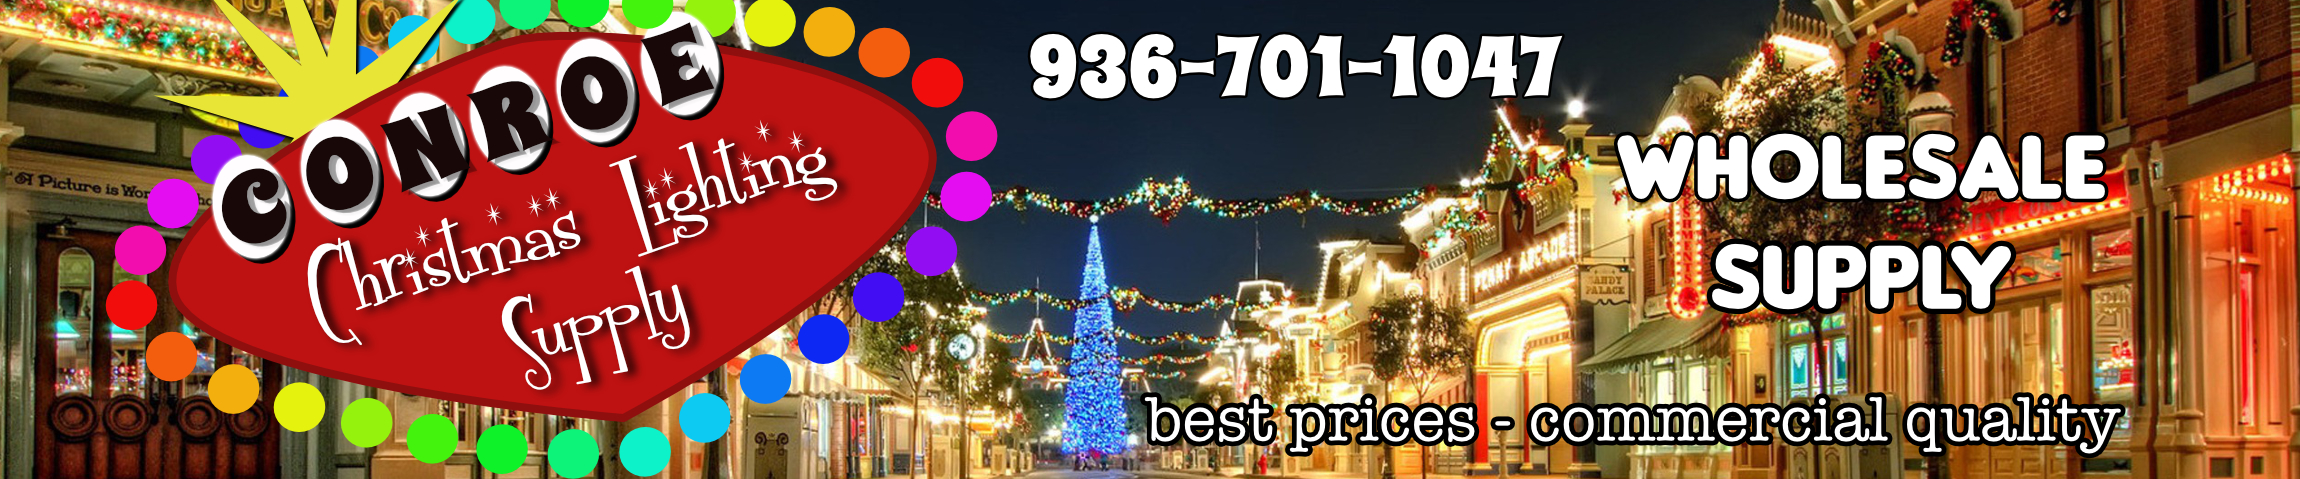 wholesale supplies conroe commercial christmas lighting supply